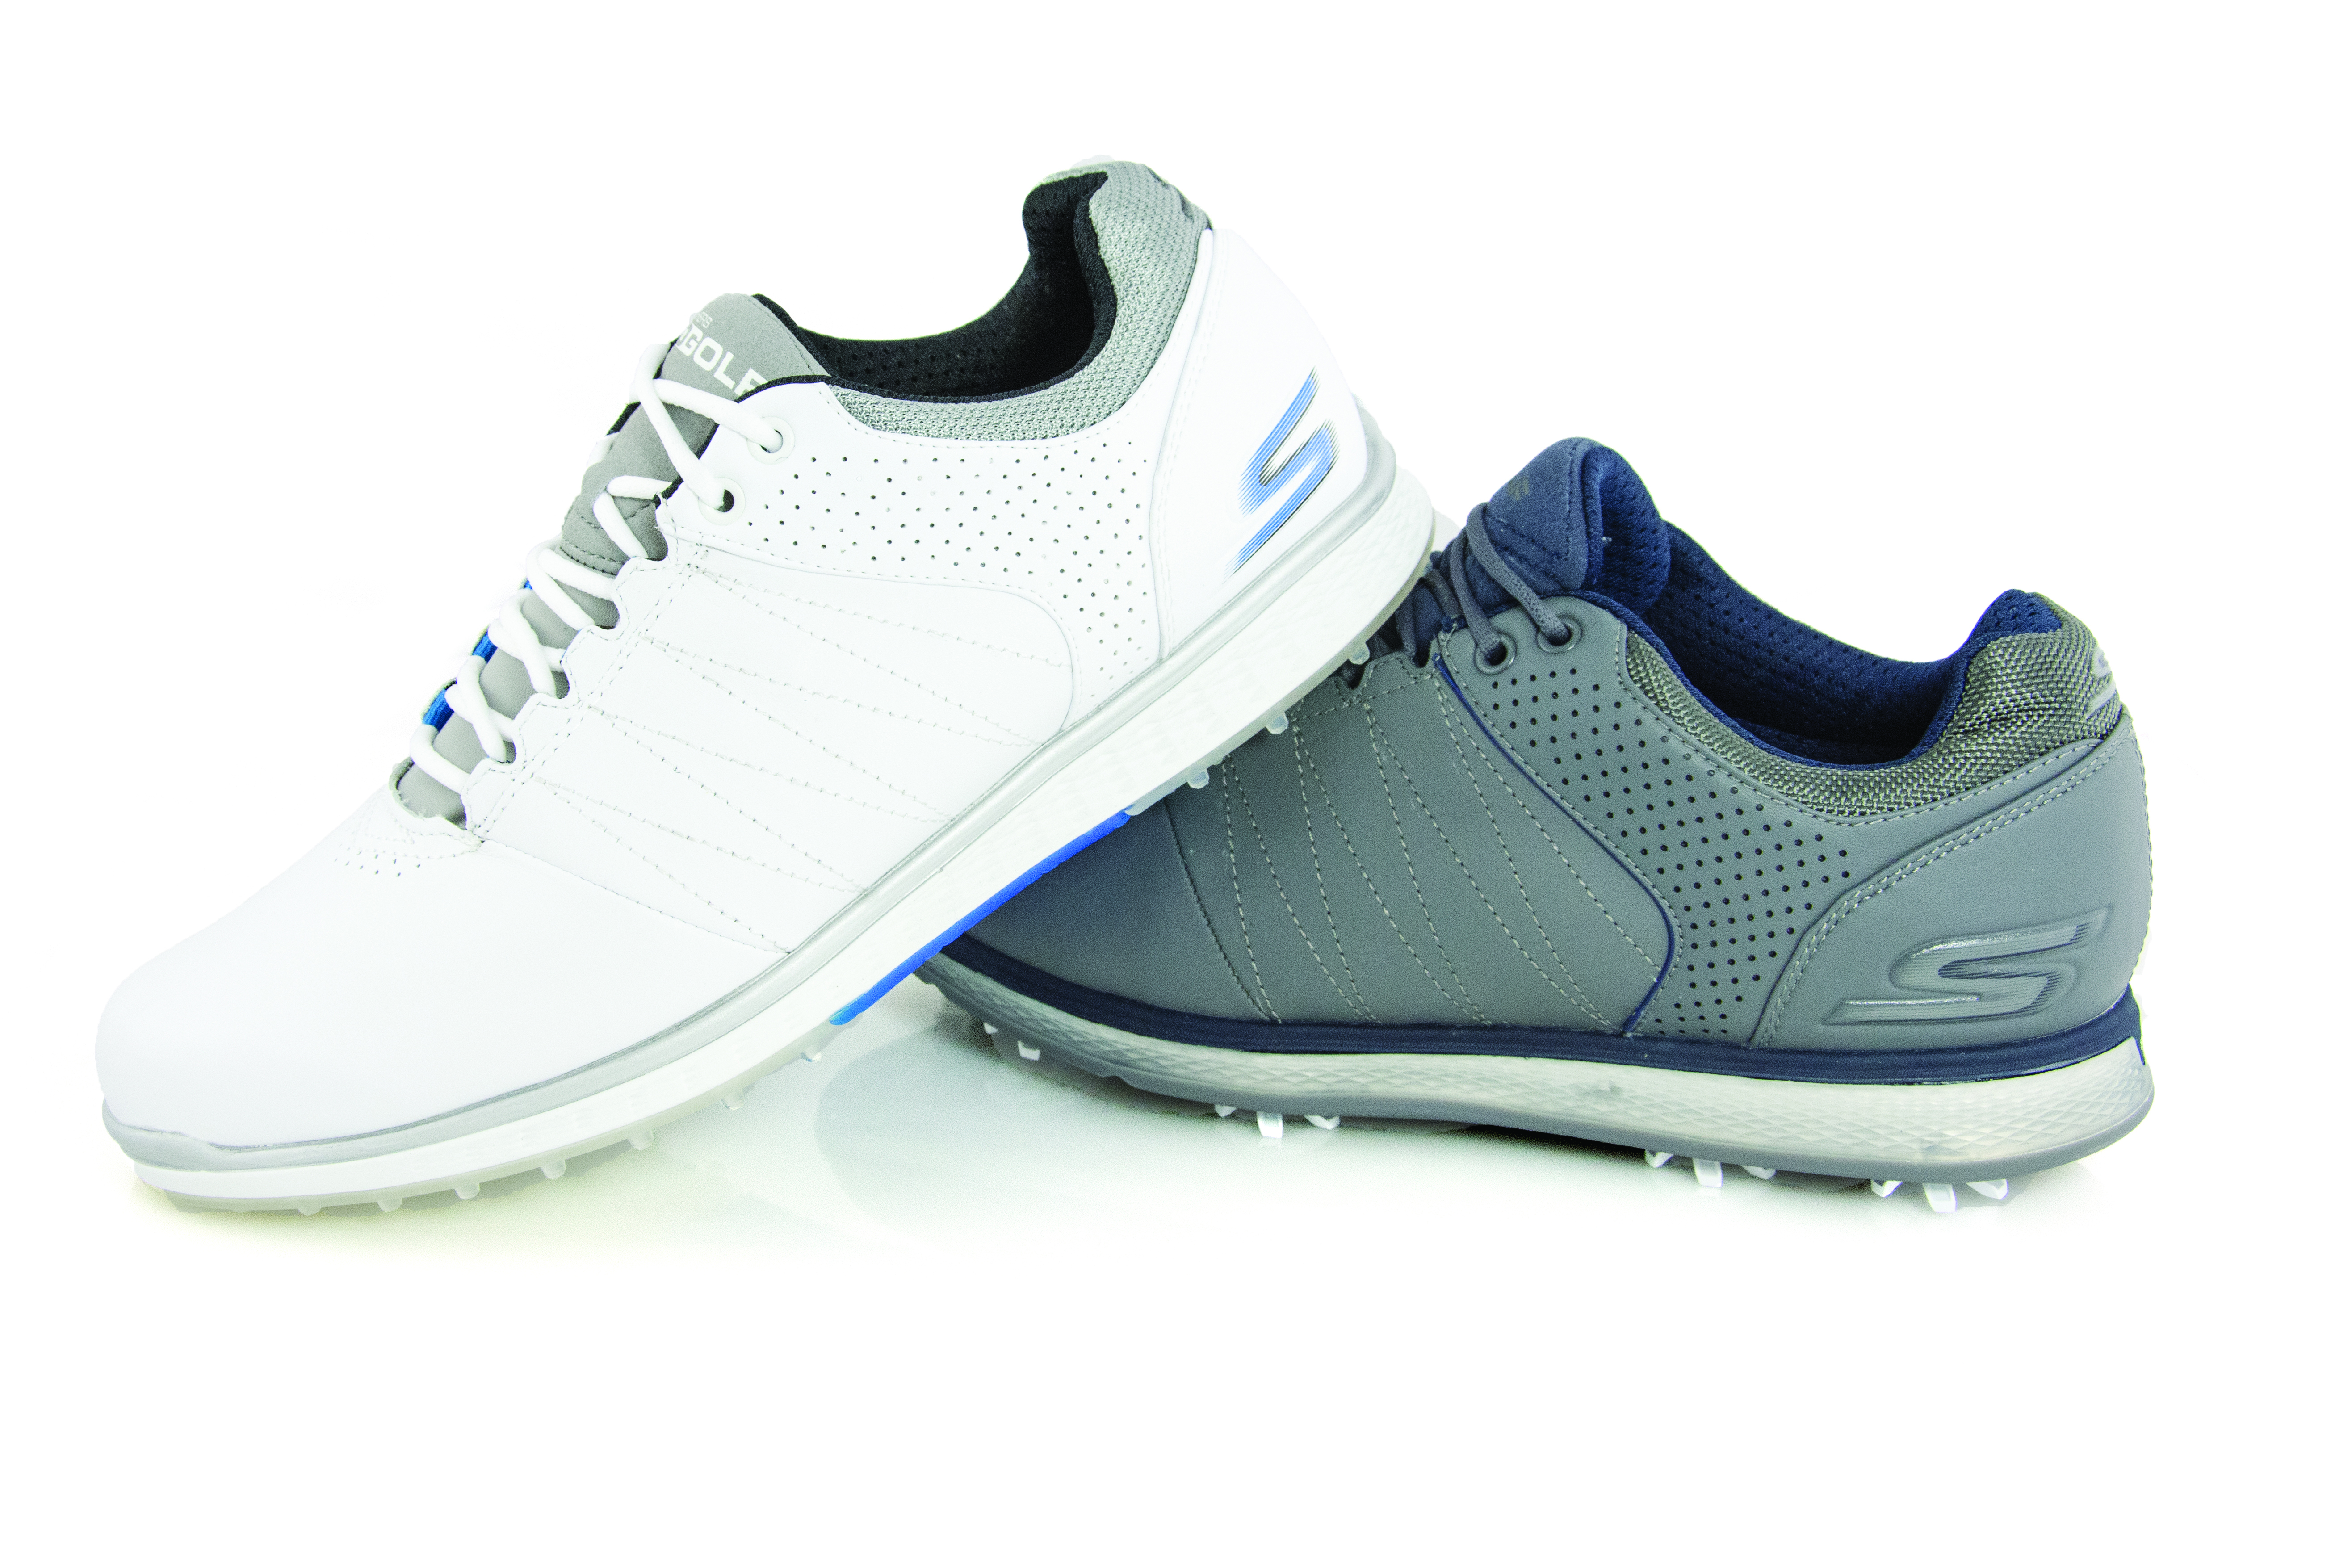 Skechers launches Go Golf 2017 shoes